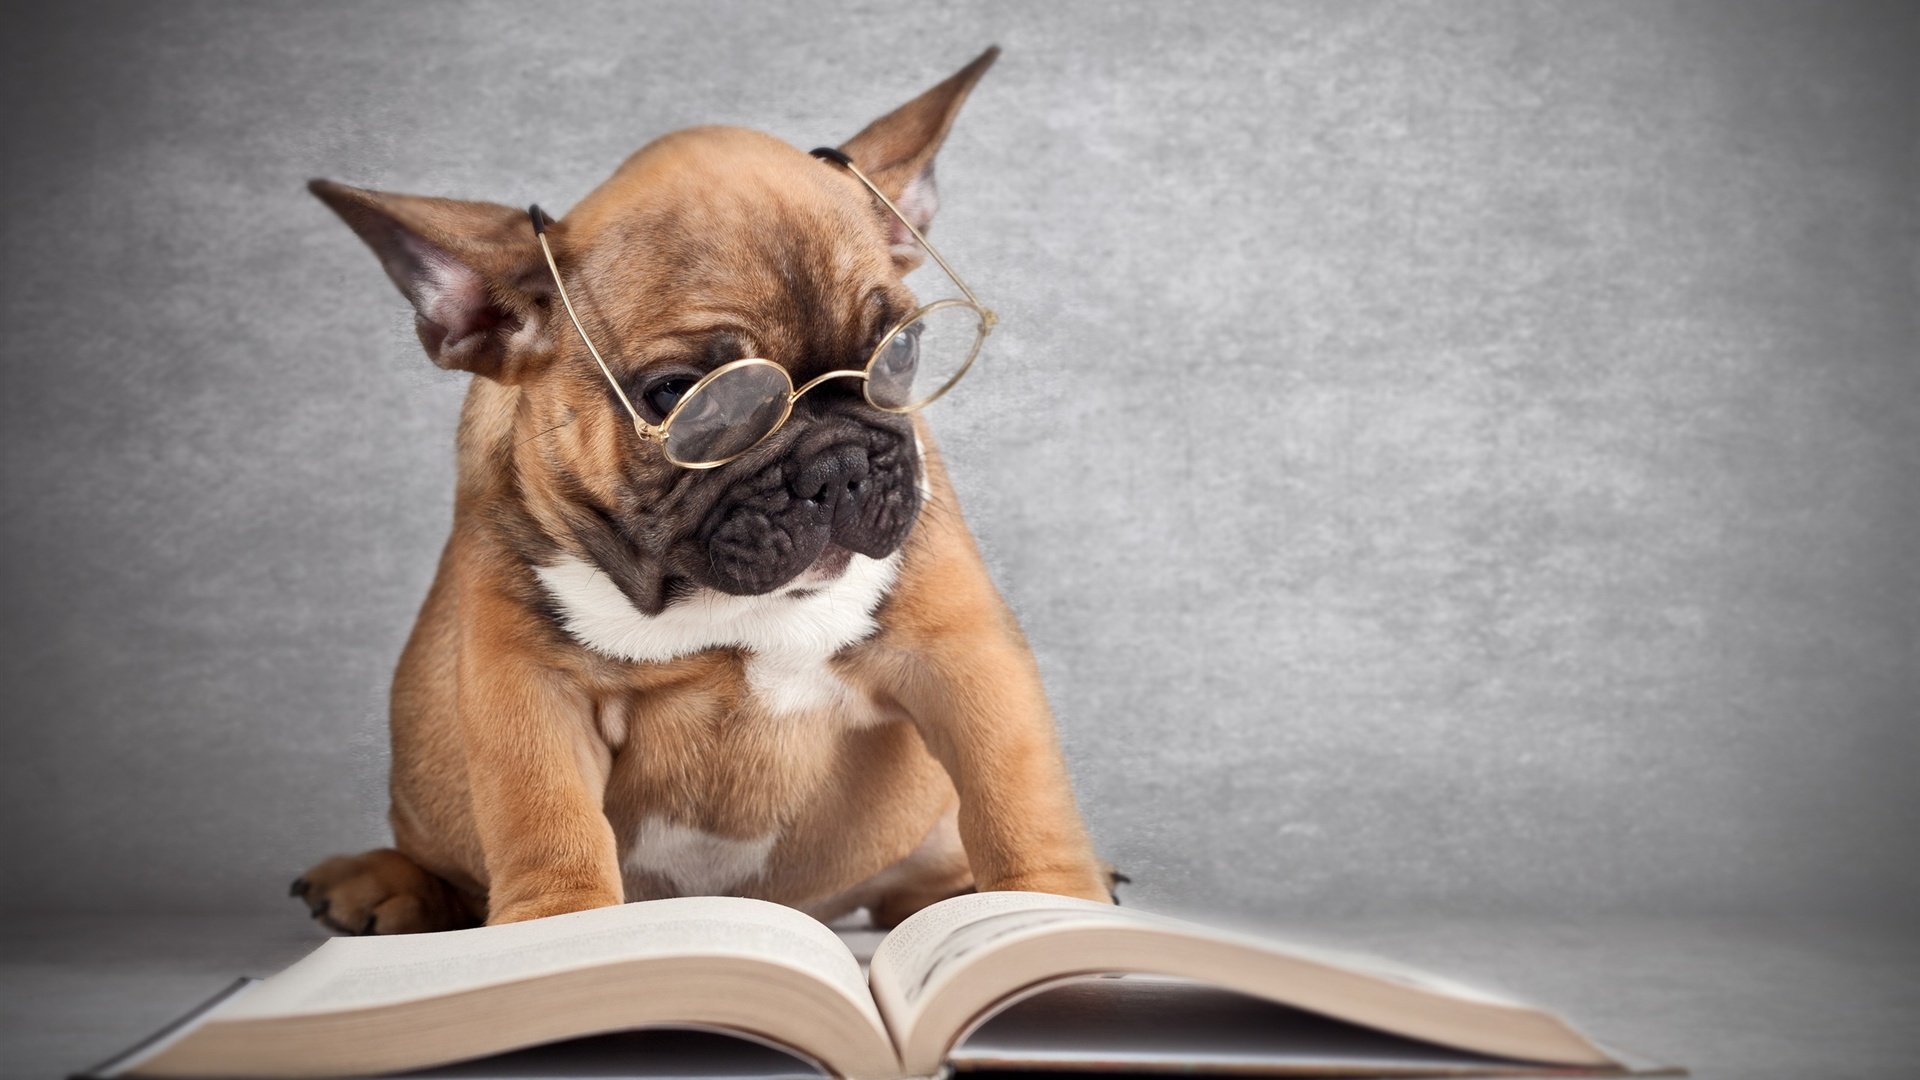 dog with glasses wallpaper 40032 1920x1080 px ~ hdwallsource